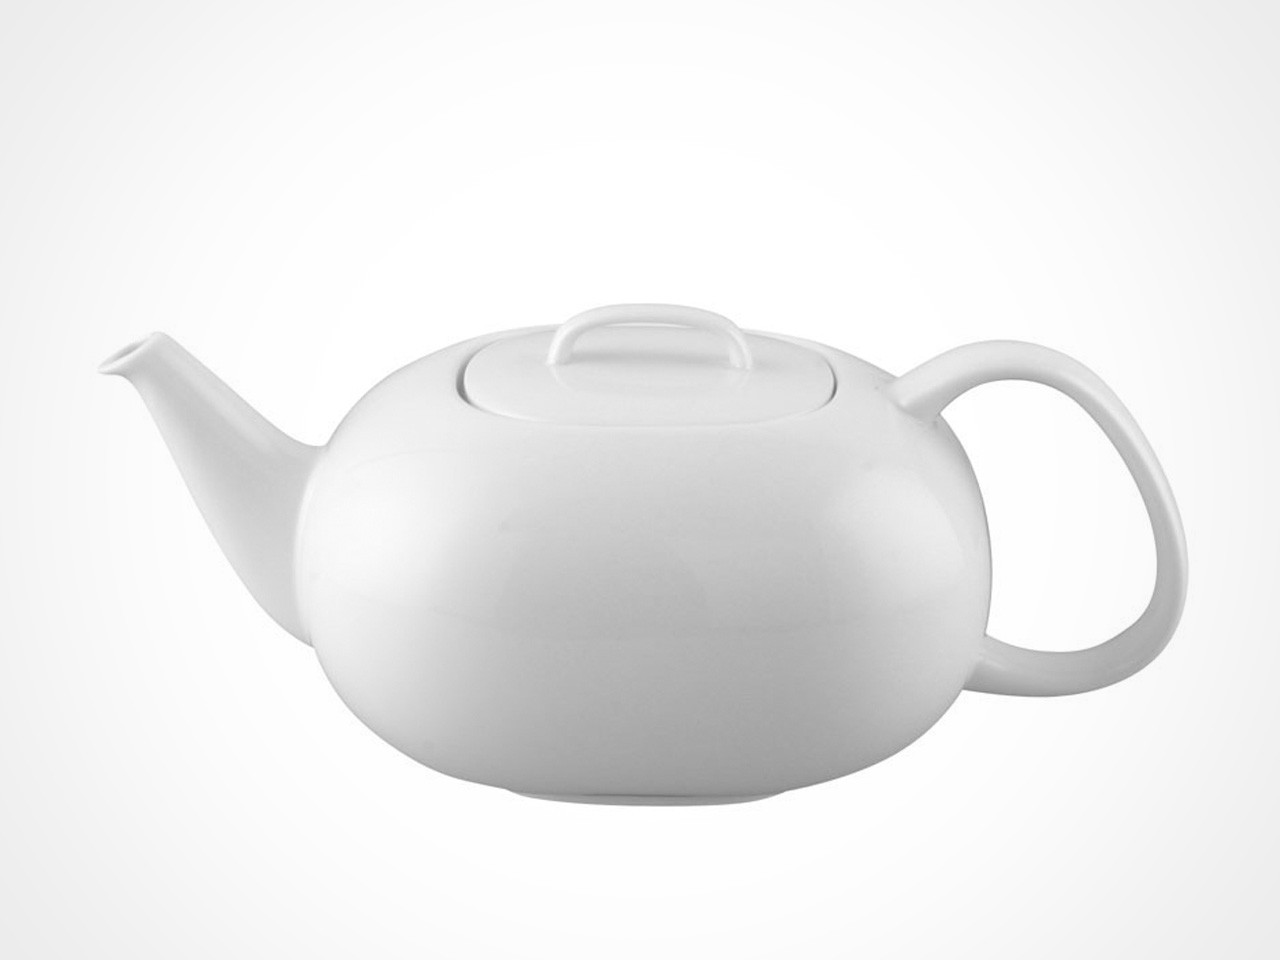 Rosenthal Moon White tea pot on white background.